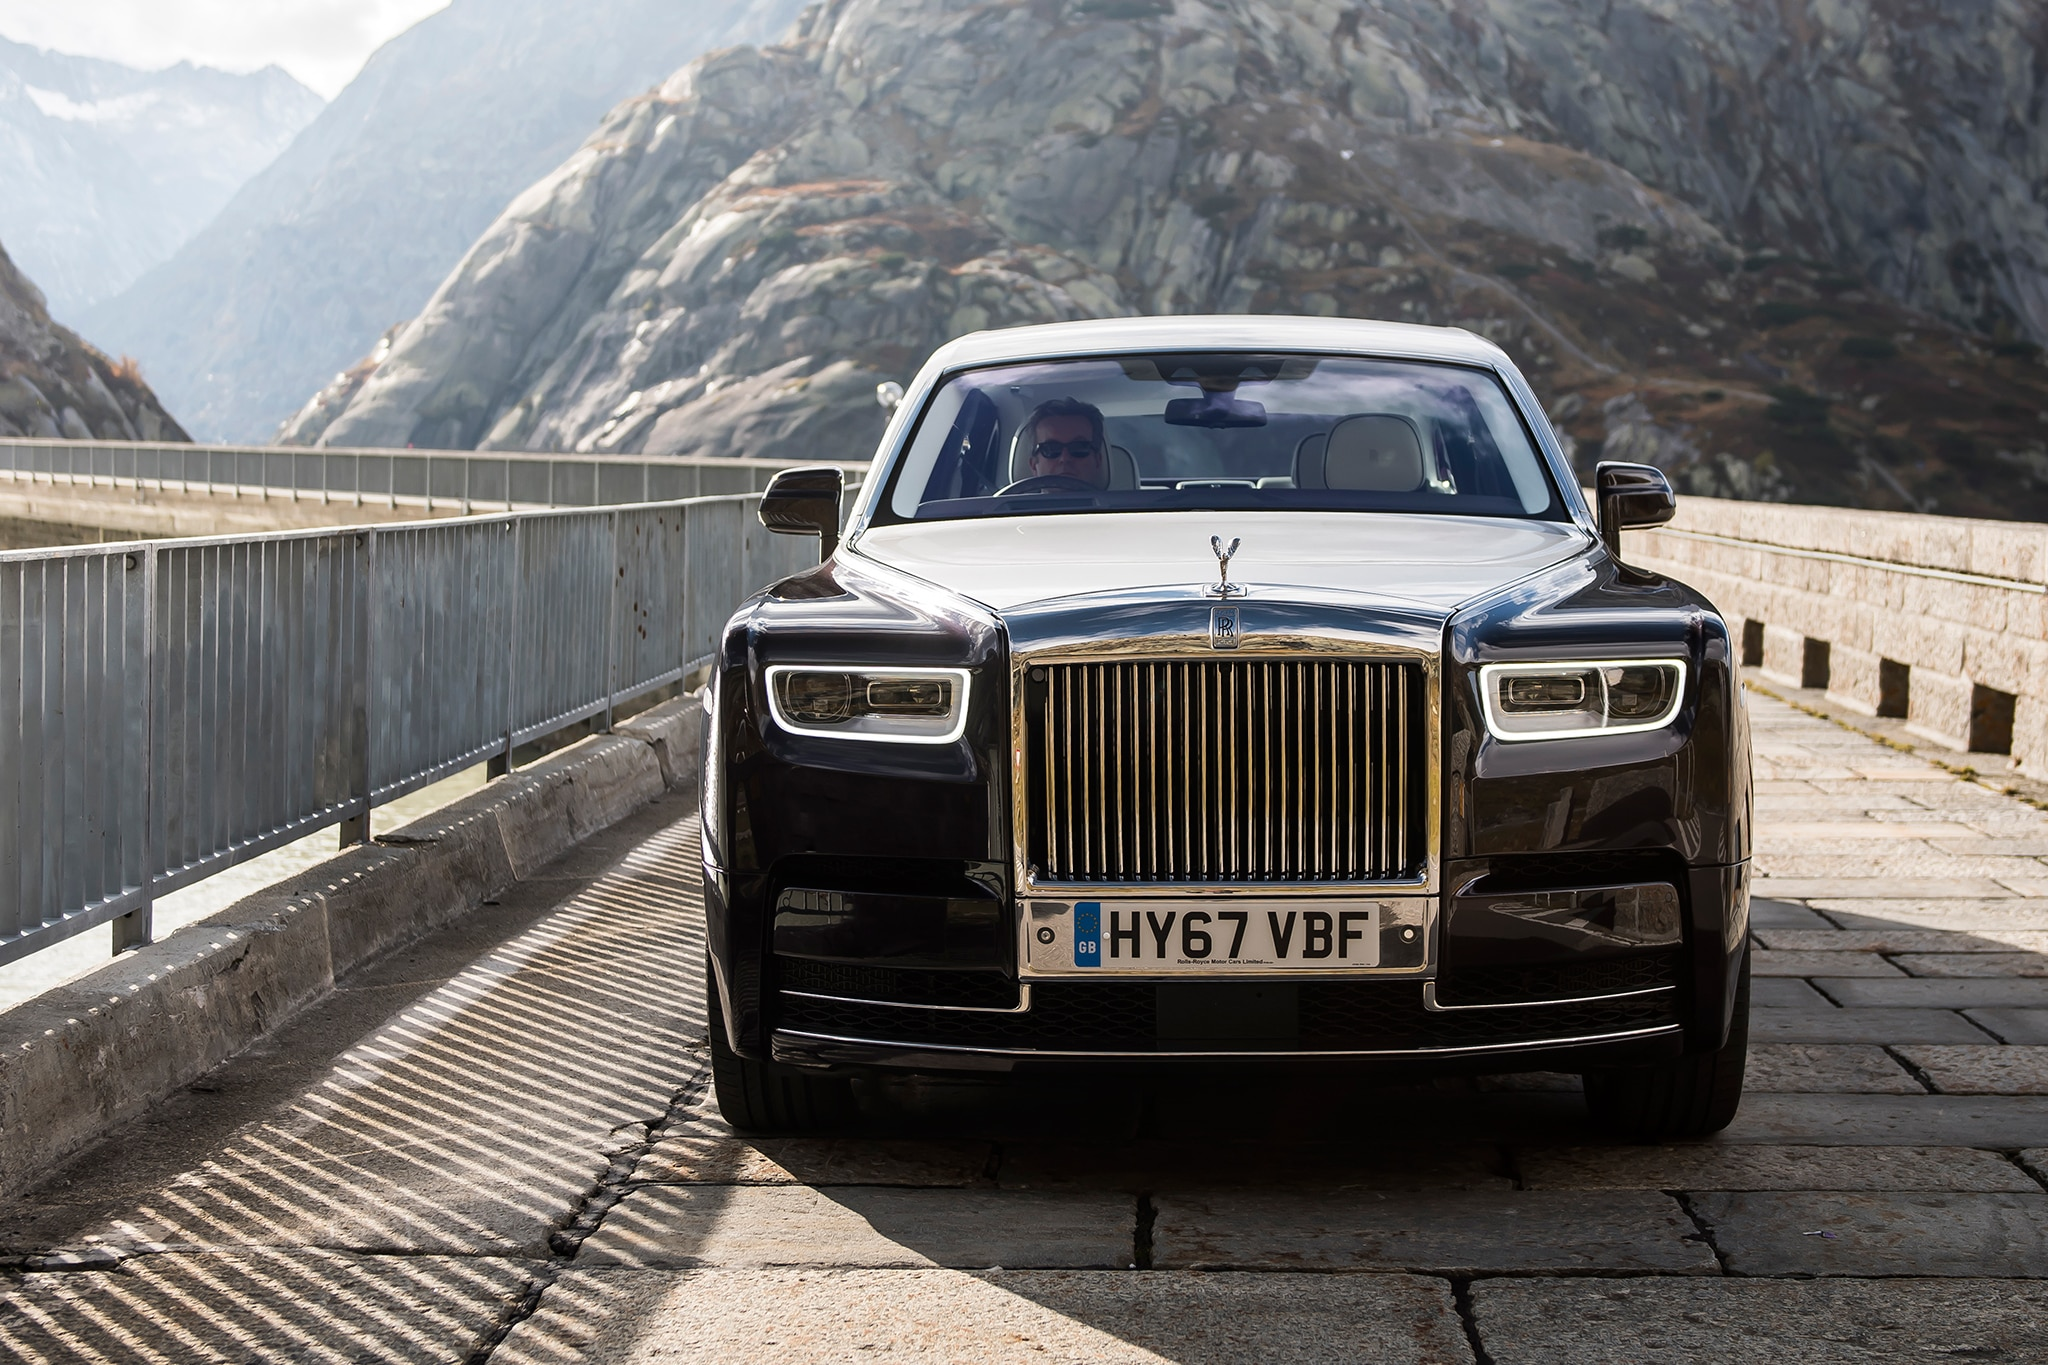 Rolls Royce Wraith 0 60 >> 2018 Rolls-Royce Phantom First Drive Review | Automobile Magazine